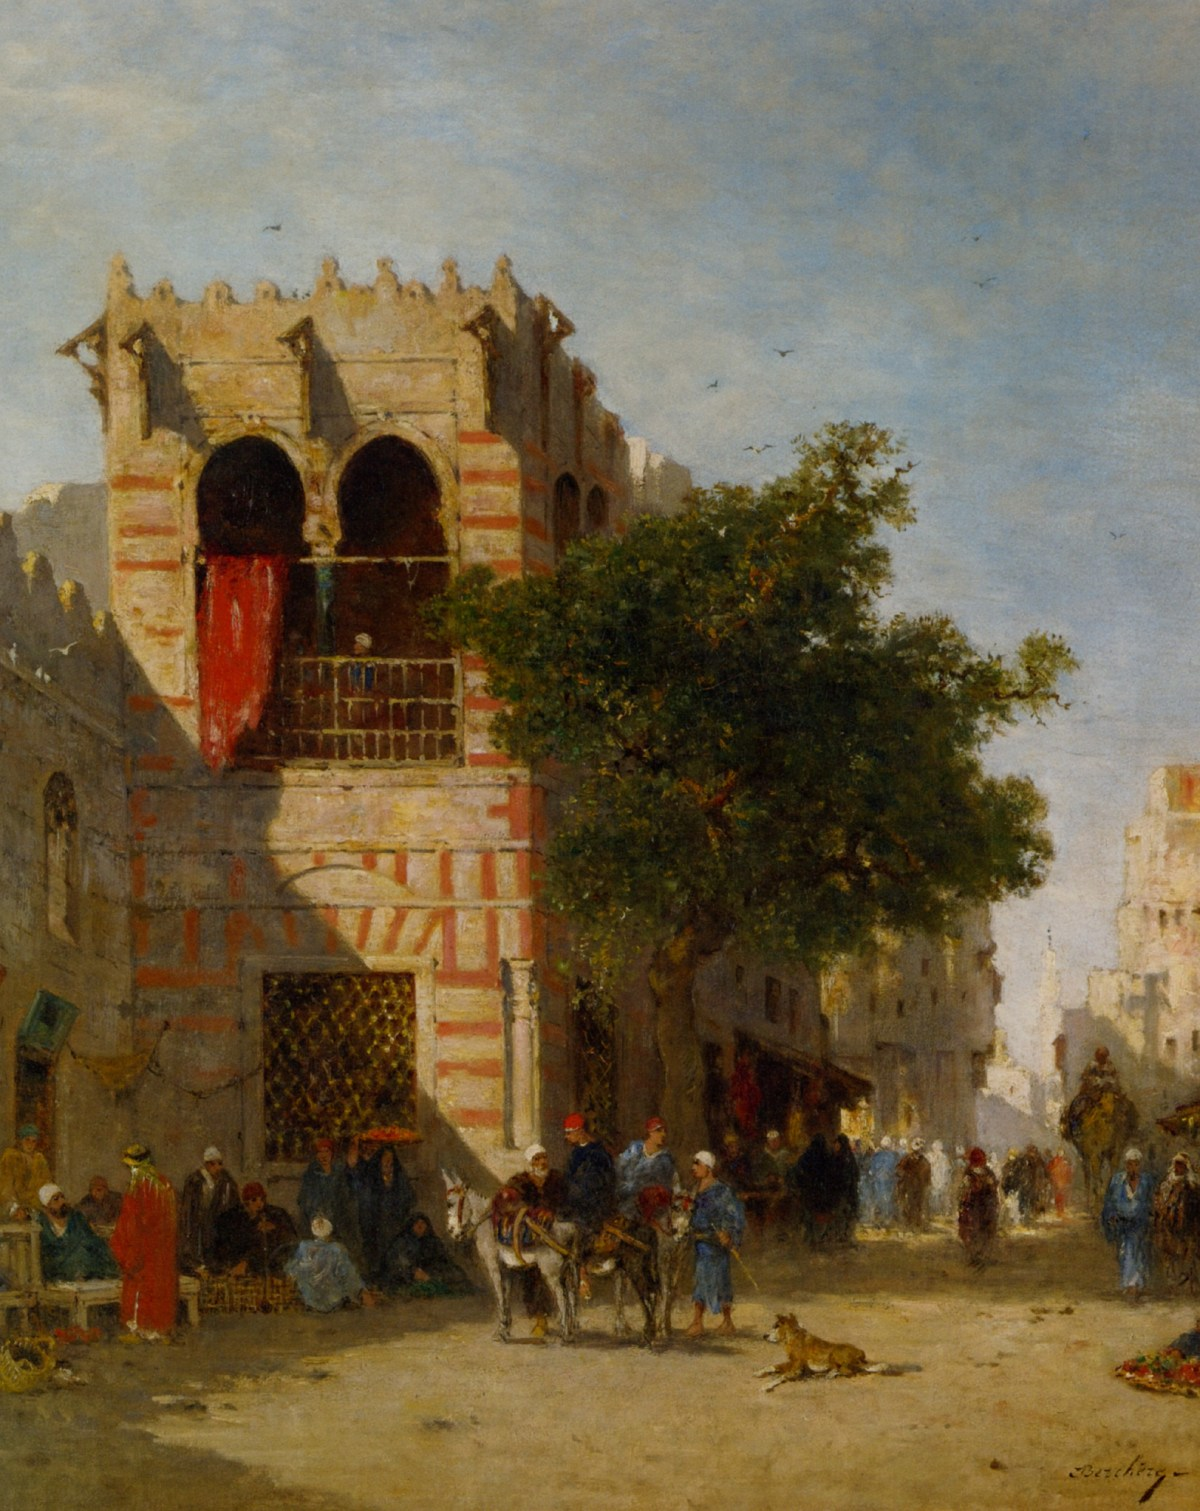 A Busy Street ­Cairo by Narcisse Berchere